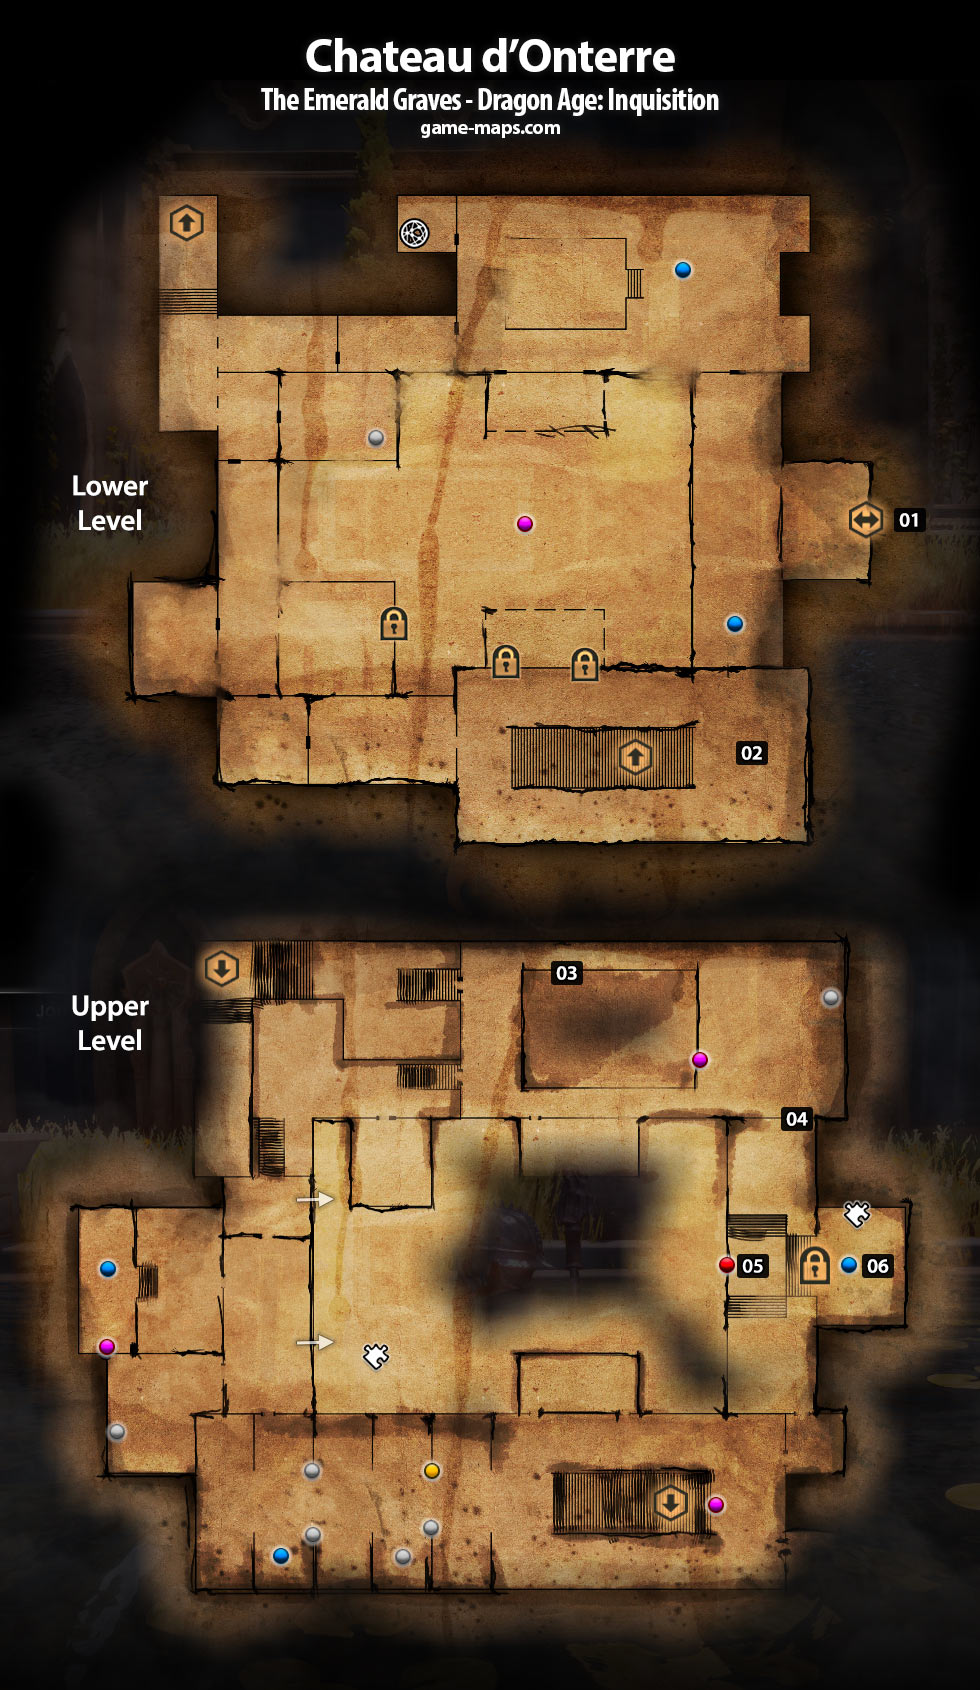 Map Of Emerald Graves : emerald, graves, Dragon, Inquisition, Emerald, Graves, Catalog, Online